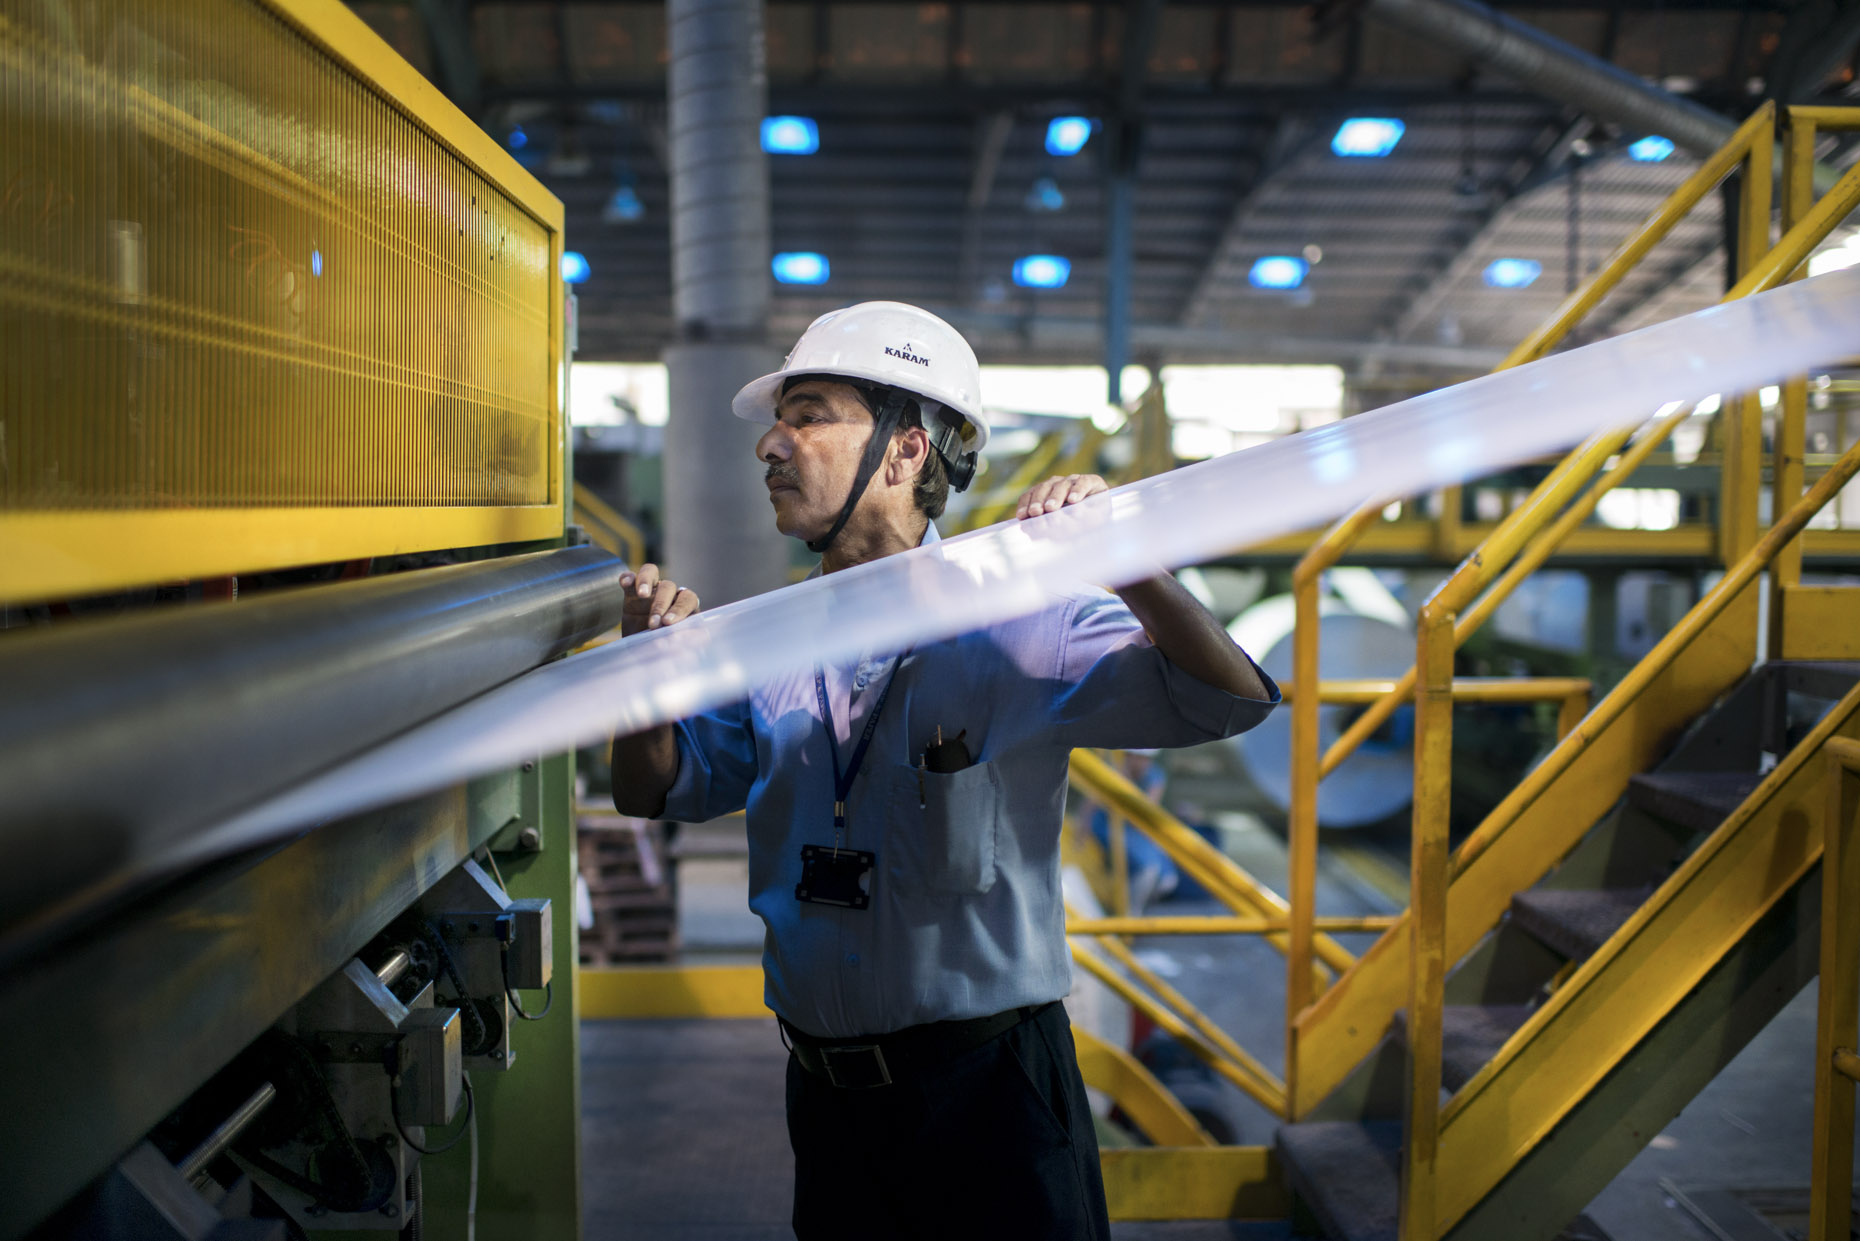 Worker Inspecting Paper |Century Pulp & Paper Factory | Birla Group | India | Stefen Chow